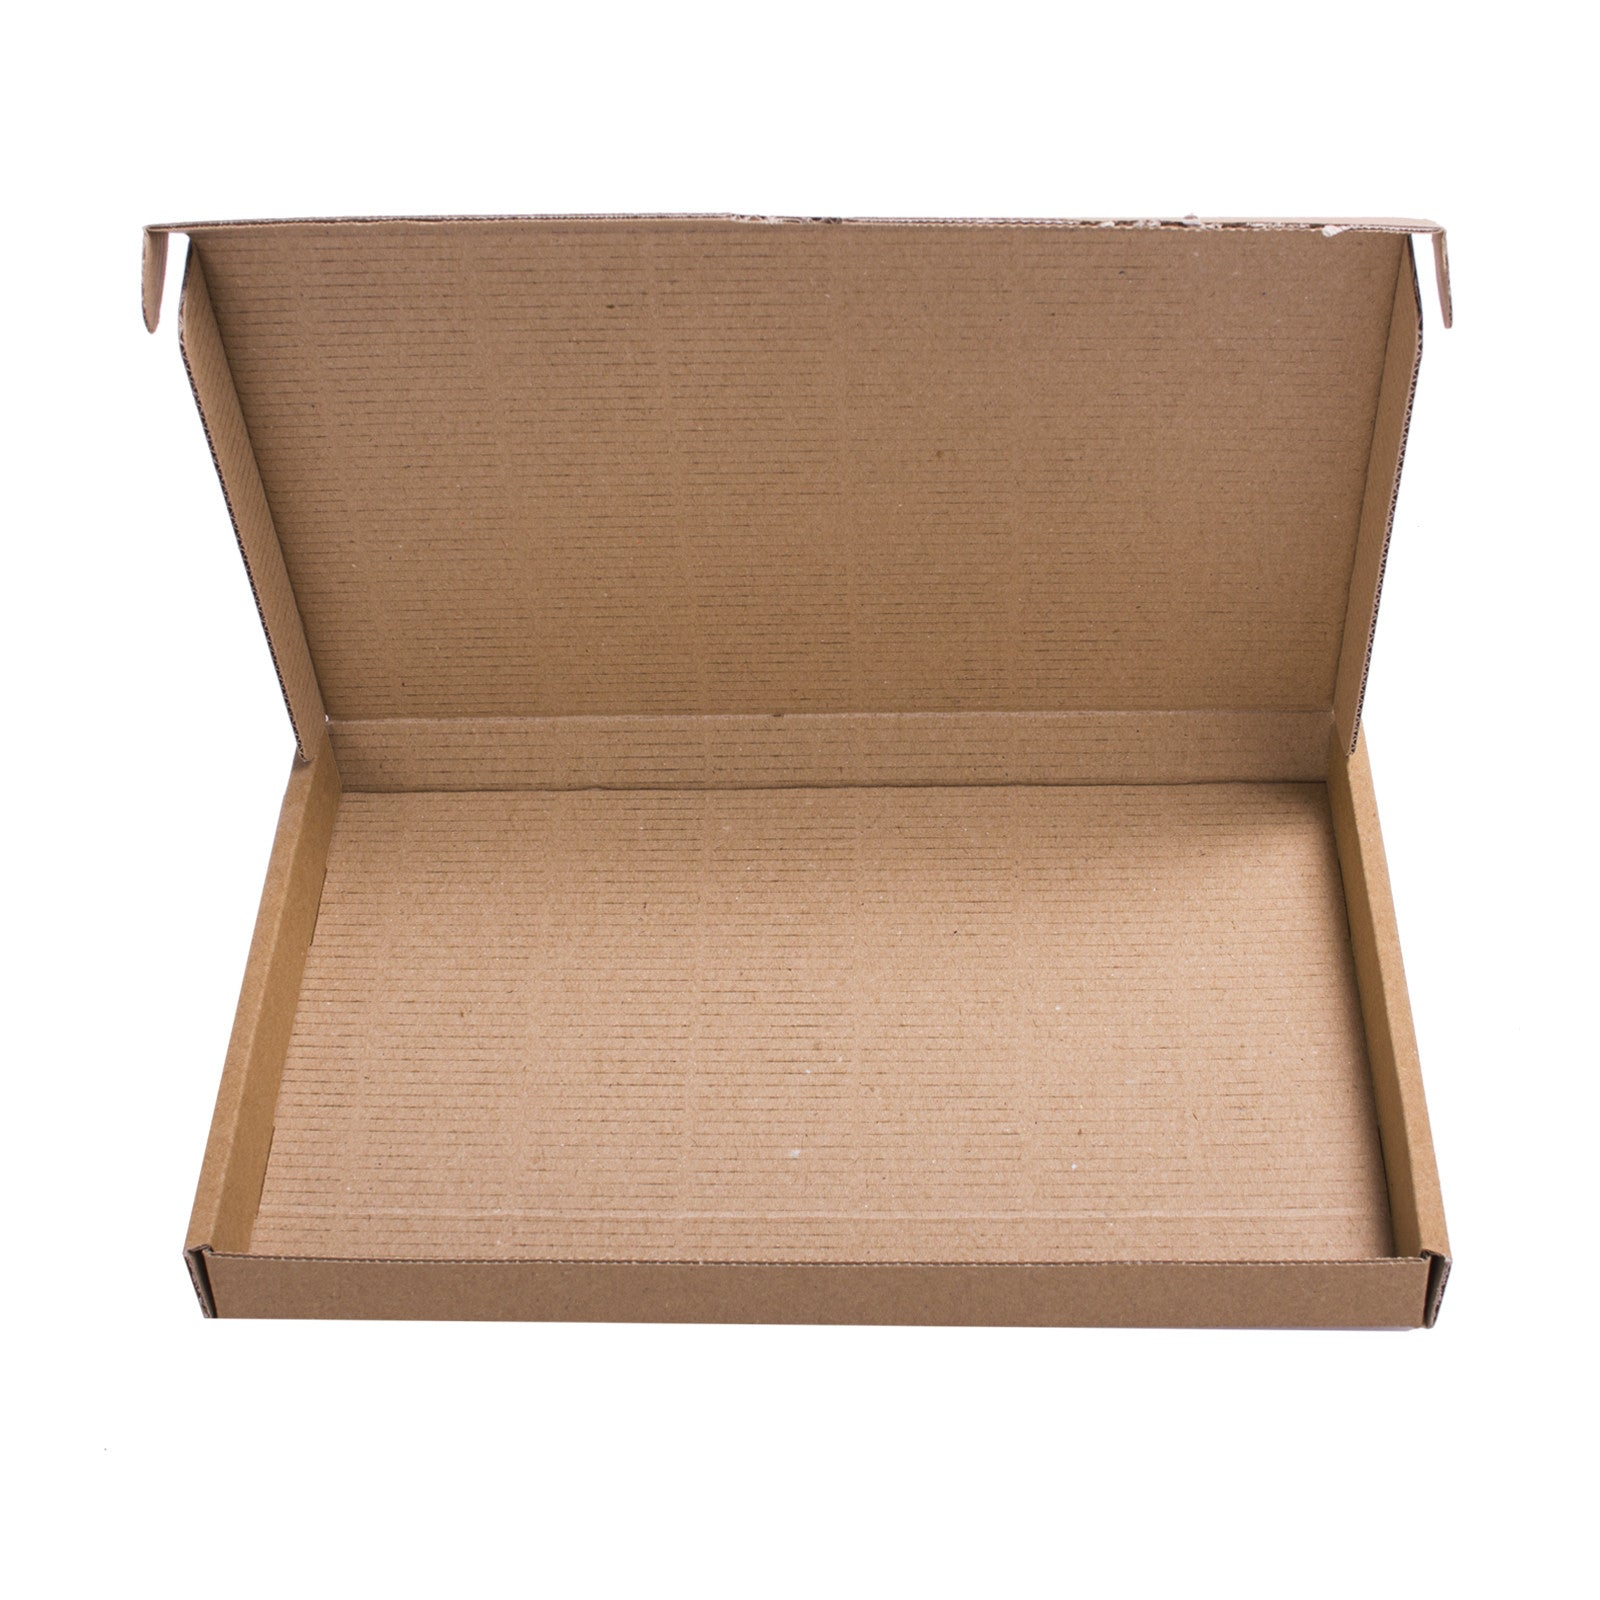 C5/A5 Royal Mail Large Letter PiP Cardboard Boxes,SR Mailing,